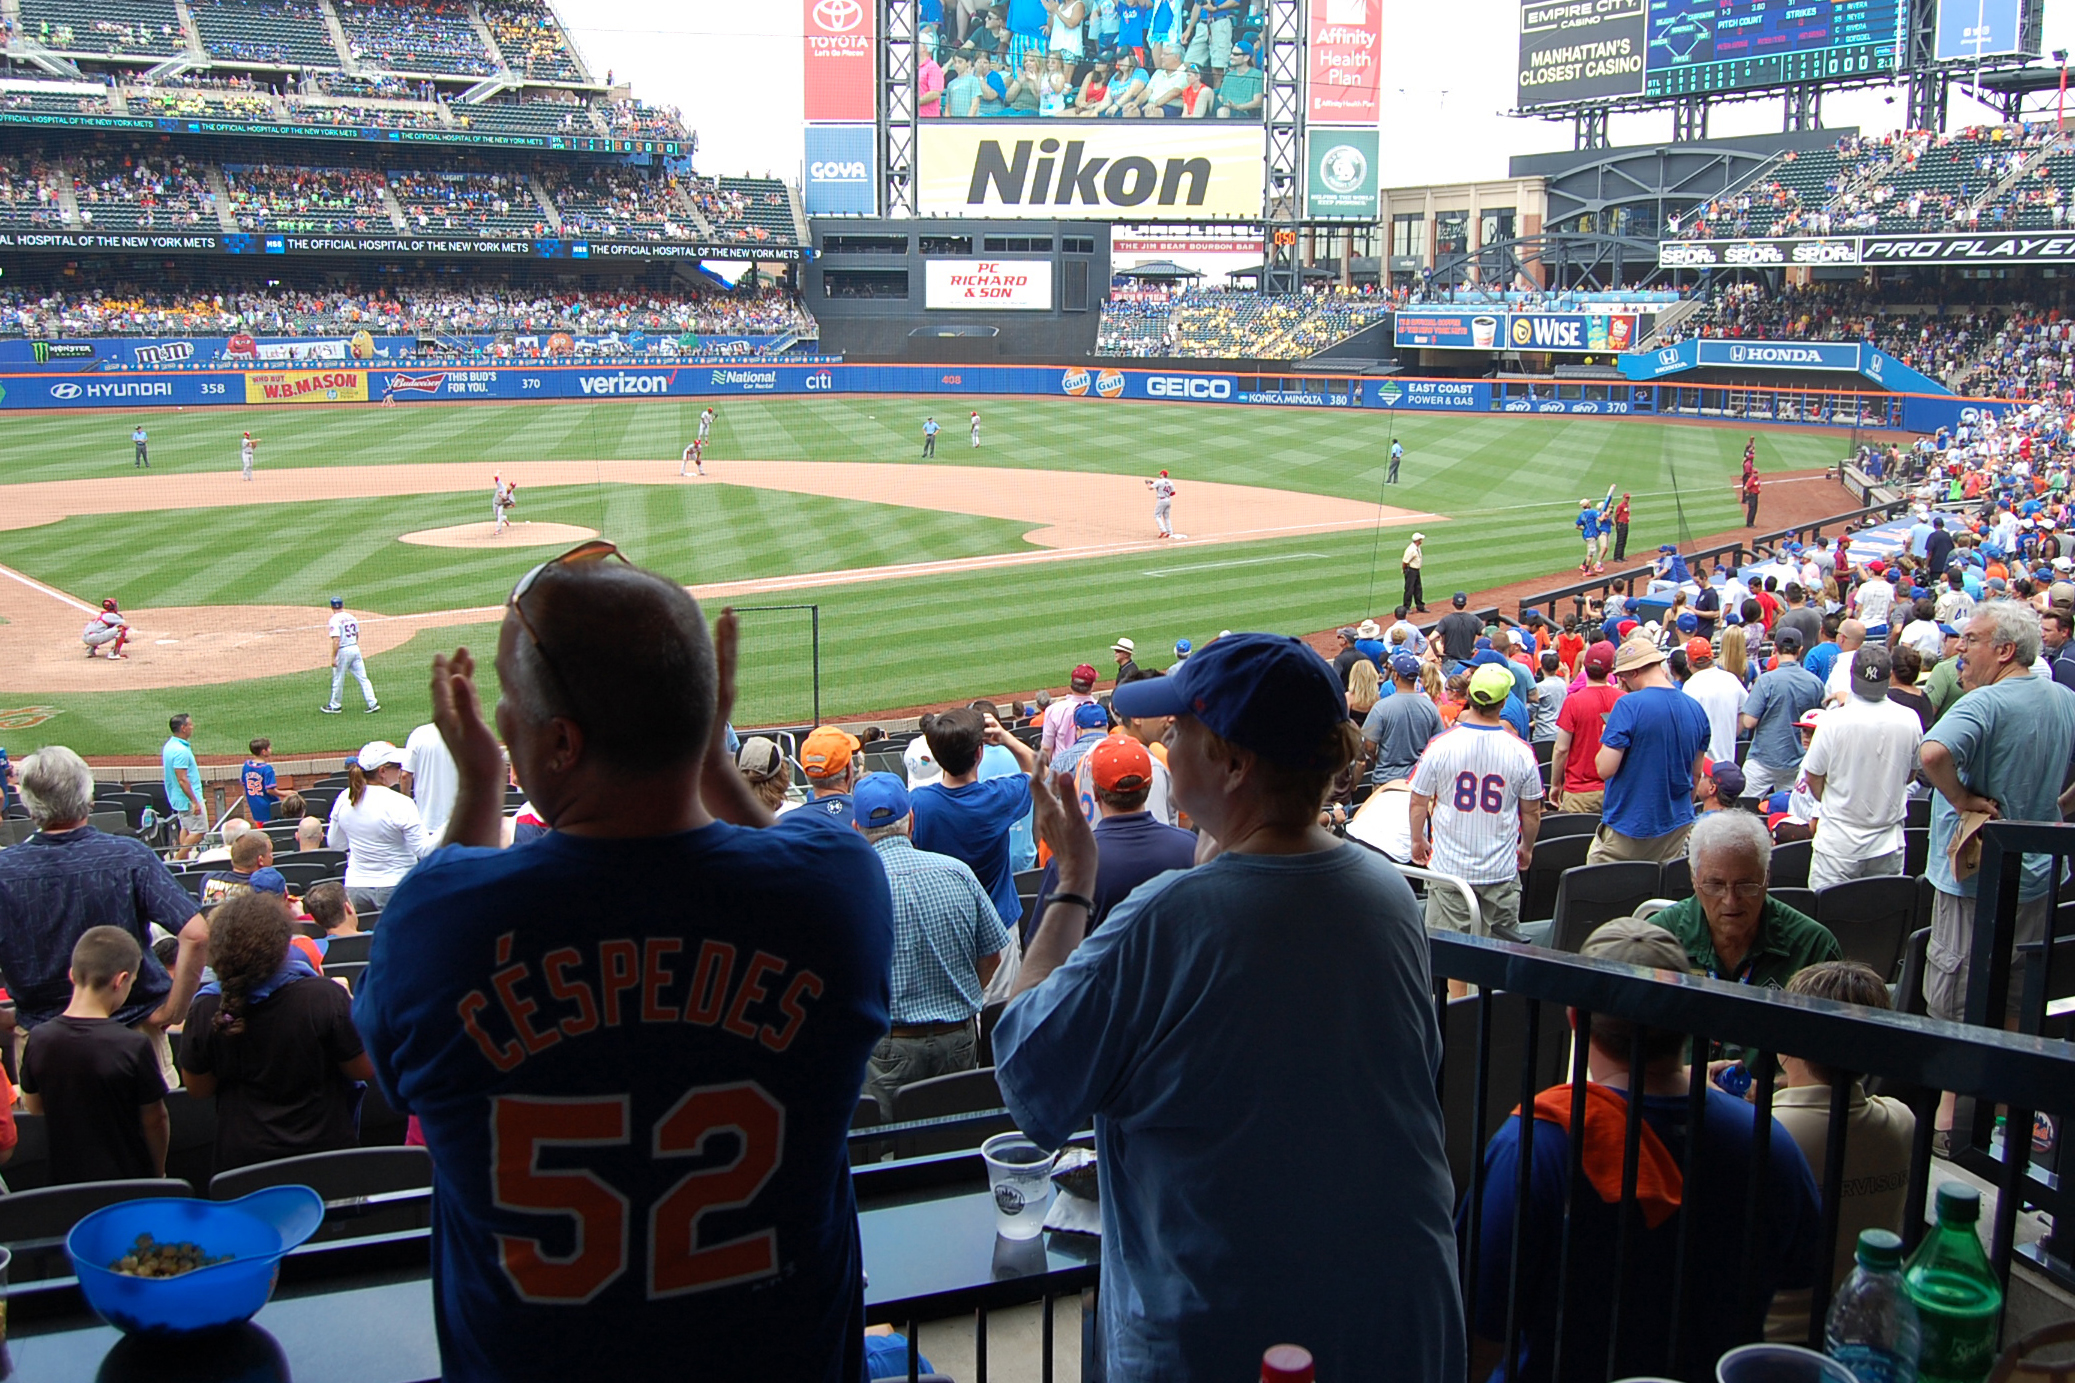 A Participant In The River House Baseball Reminiscence Program And Her Son Cheer On Mets